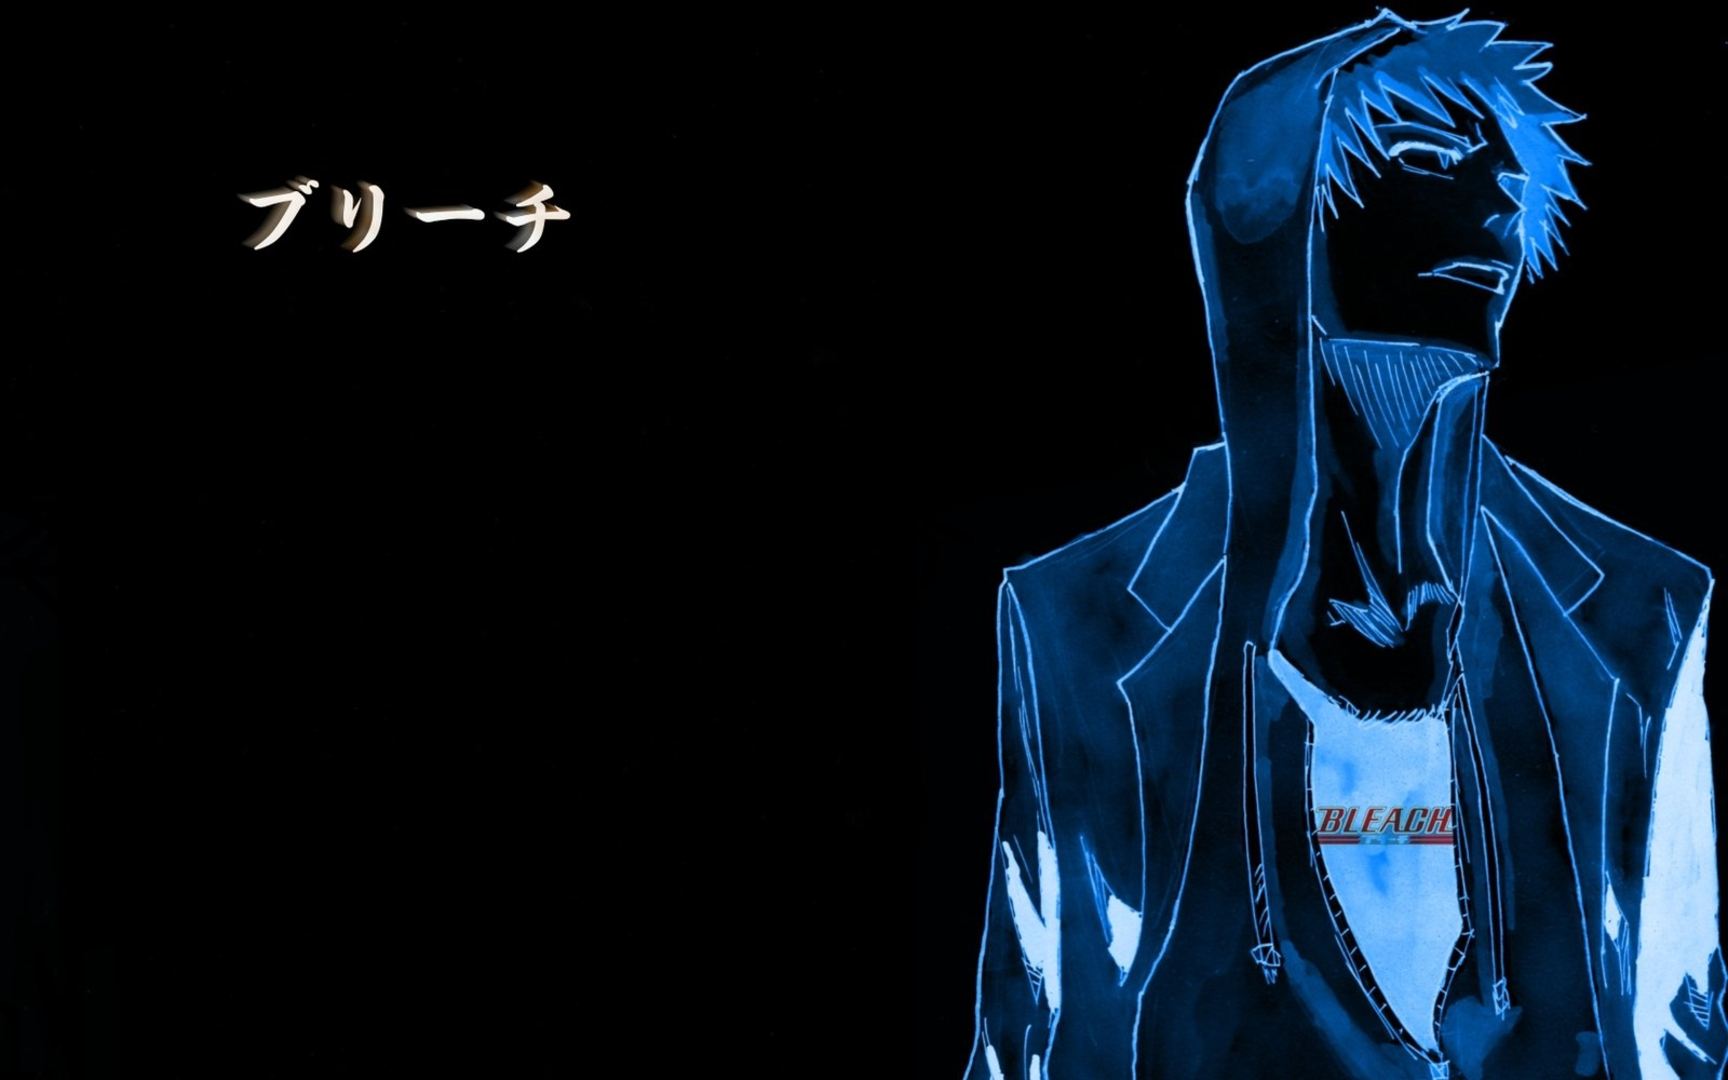 bleach wallpaper 1920 x 1080 - photo #29